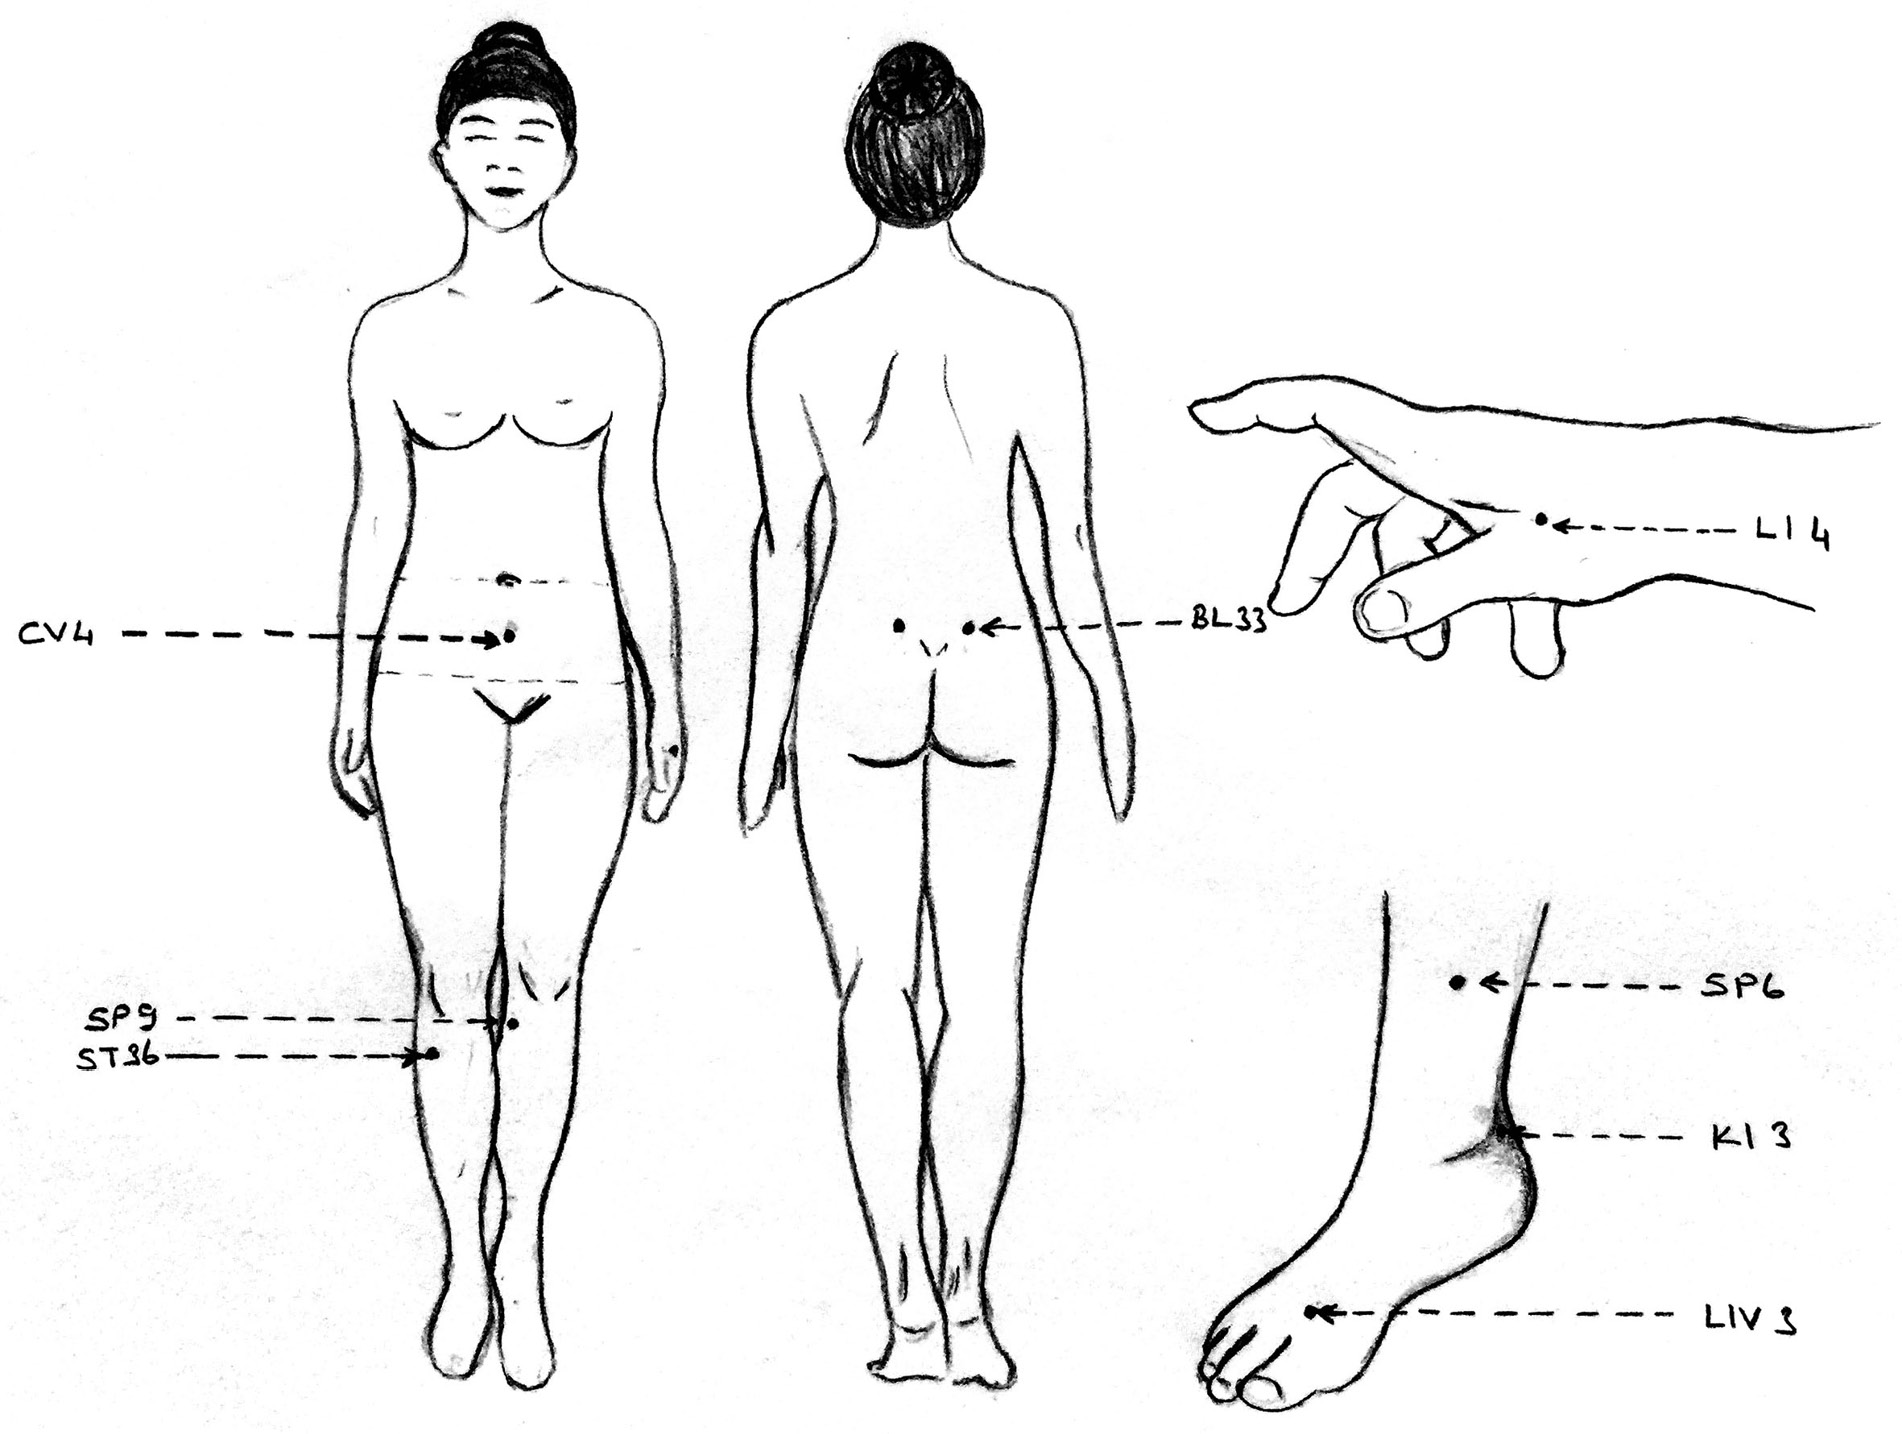 Complete response to acupuncture therapy in female patients with